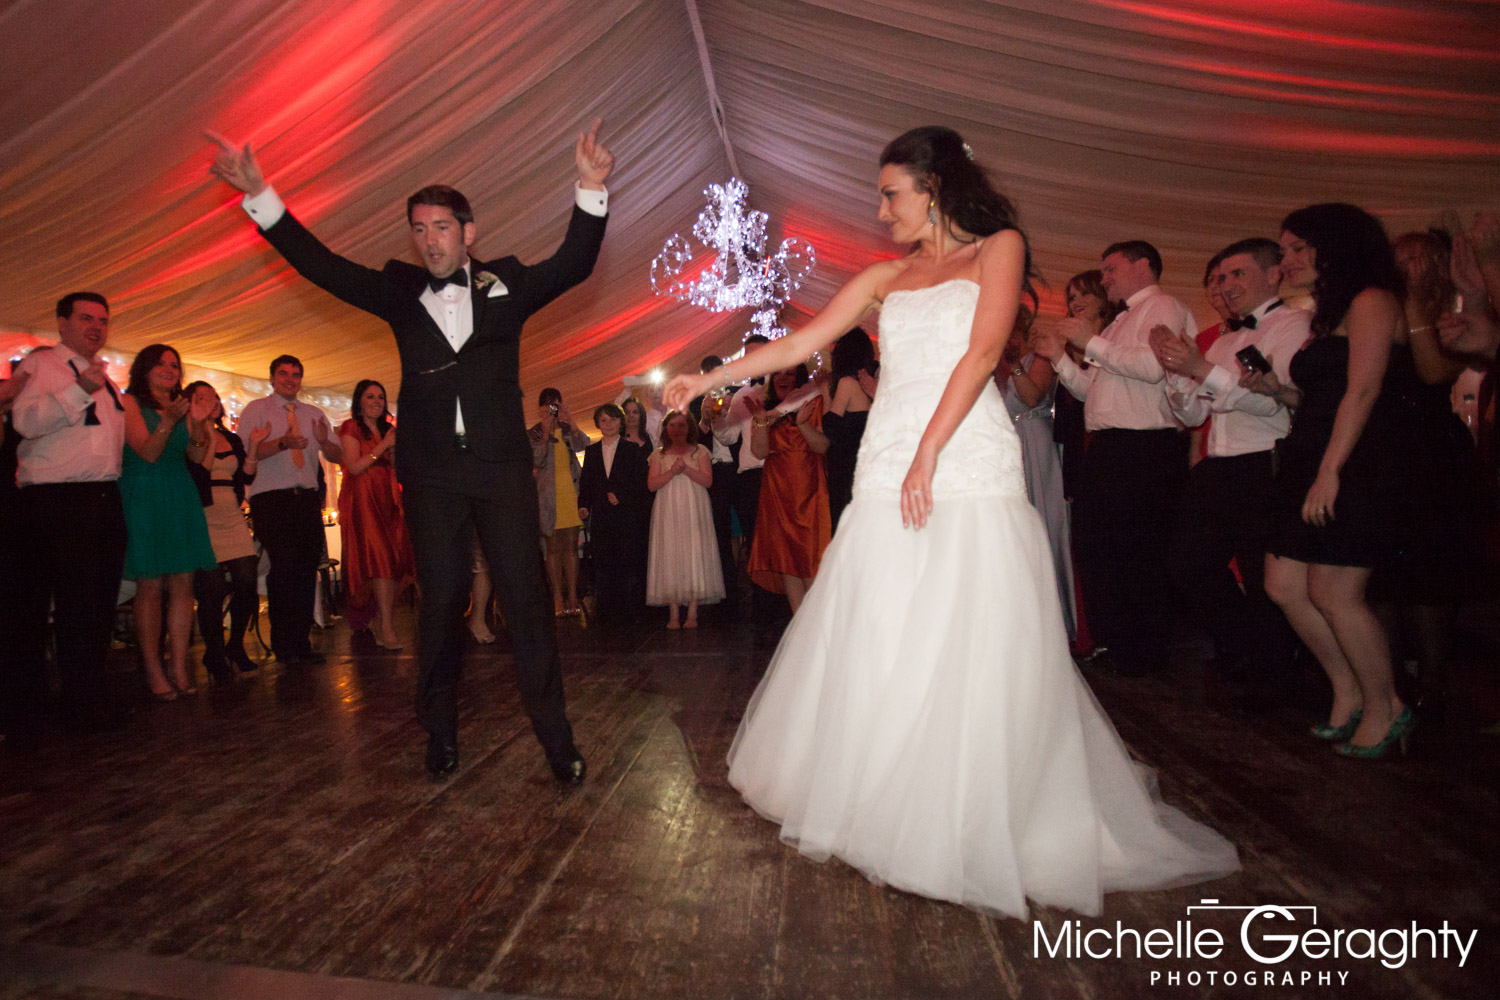 2210-Michelle Geraghty Photography_Mary & Connal-IMG_4932.jpg